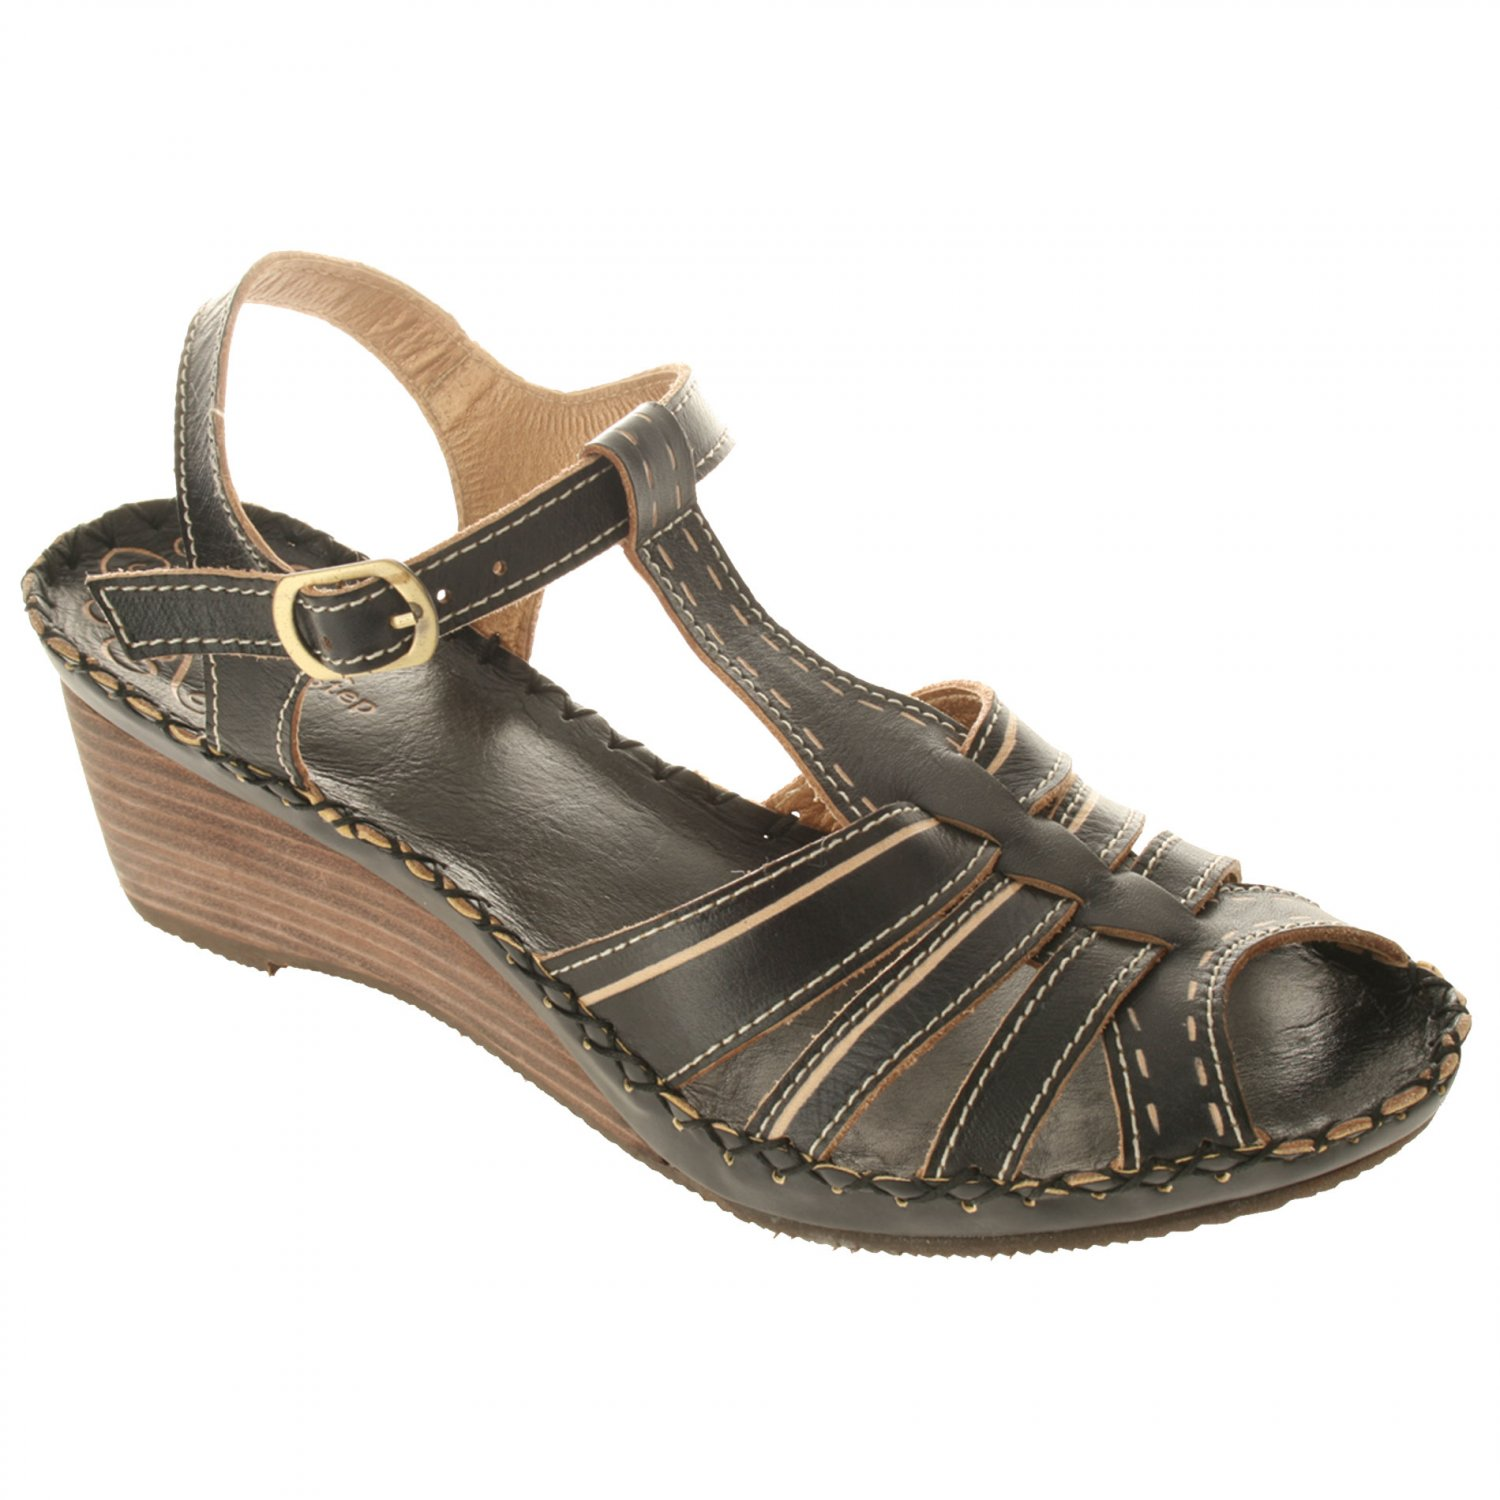 Spring Step BRISTOL Sandals Shoes All Sizes & Colors $